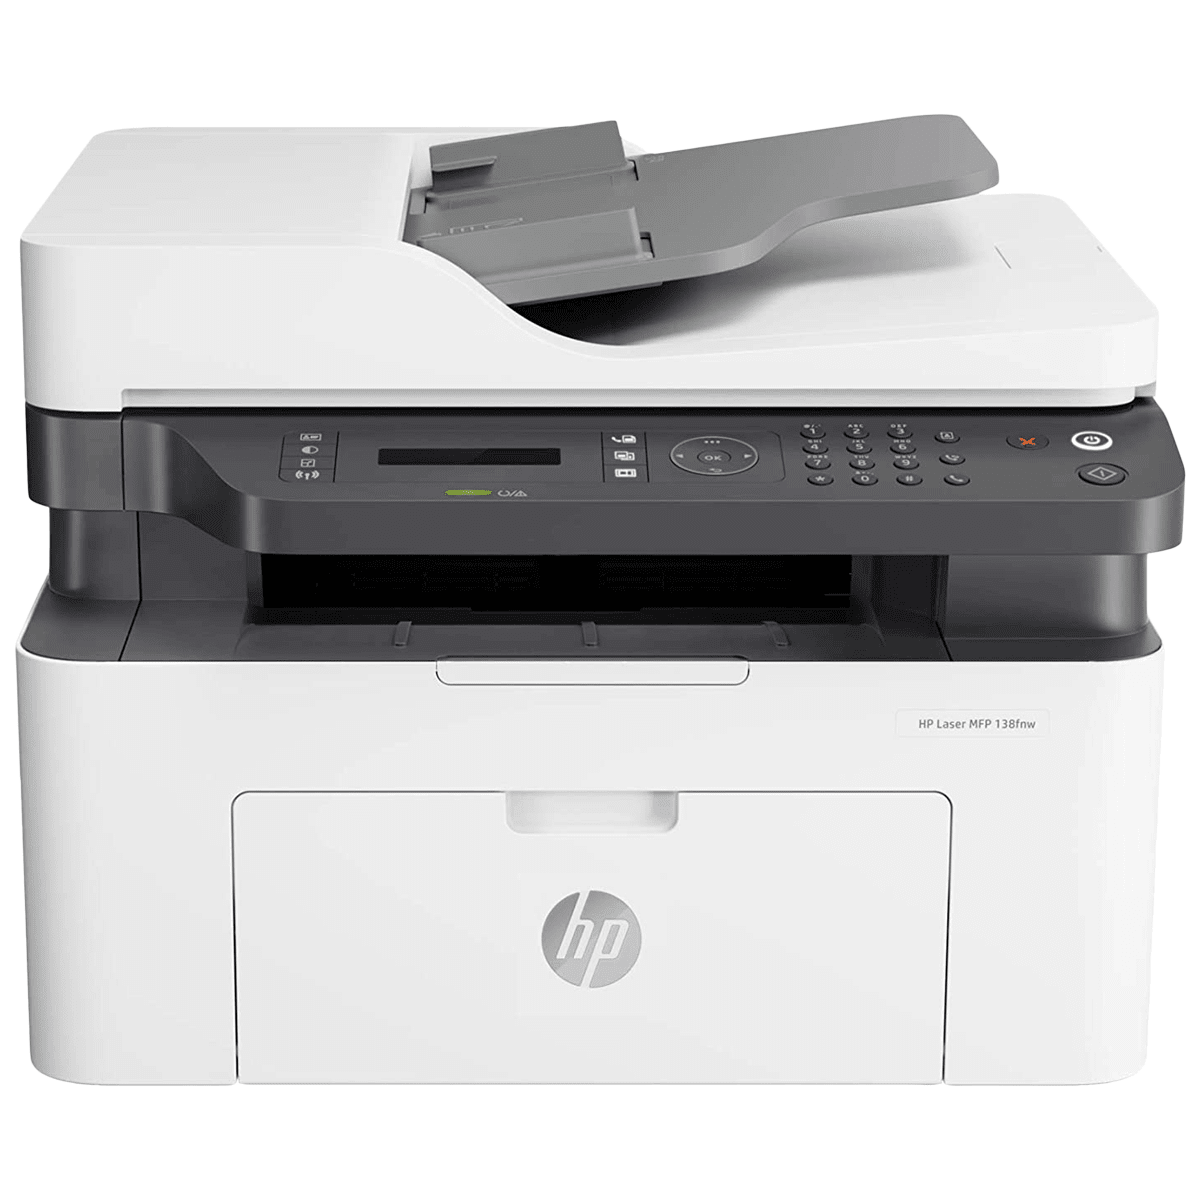 HP Laser 138fnw Wireless Black & White Multi-Function Laserjet Printer (Mobile Printing Capability, 4ZB91A, White)